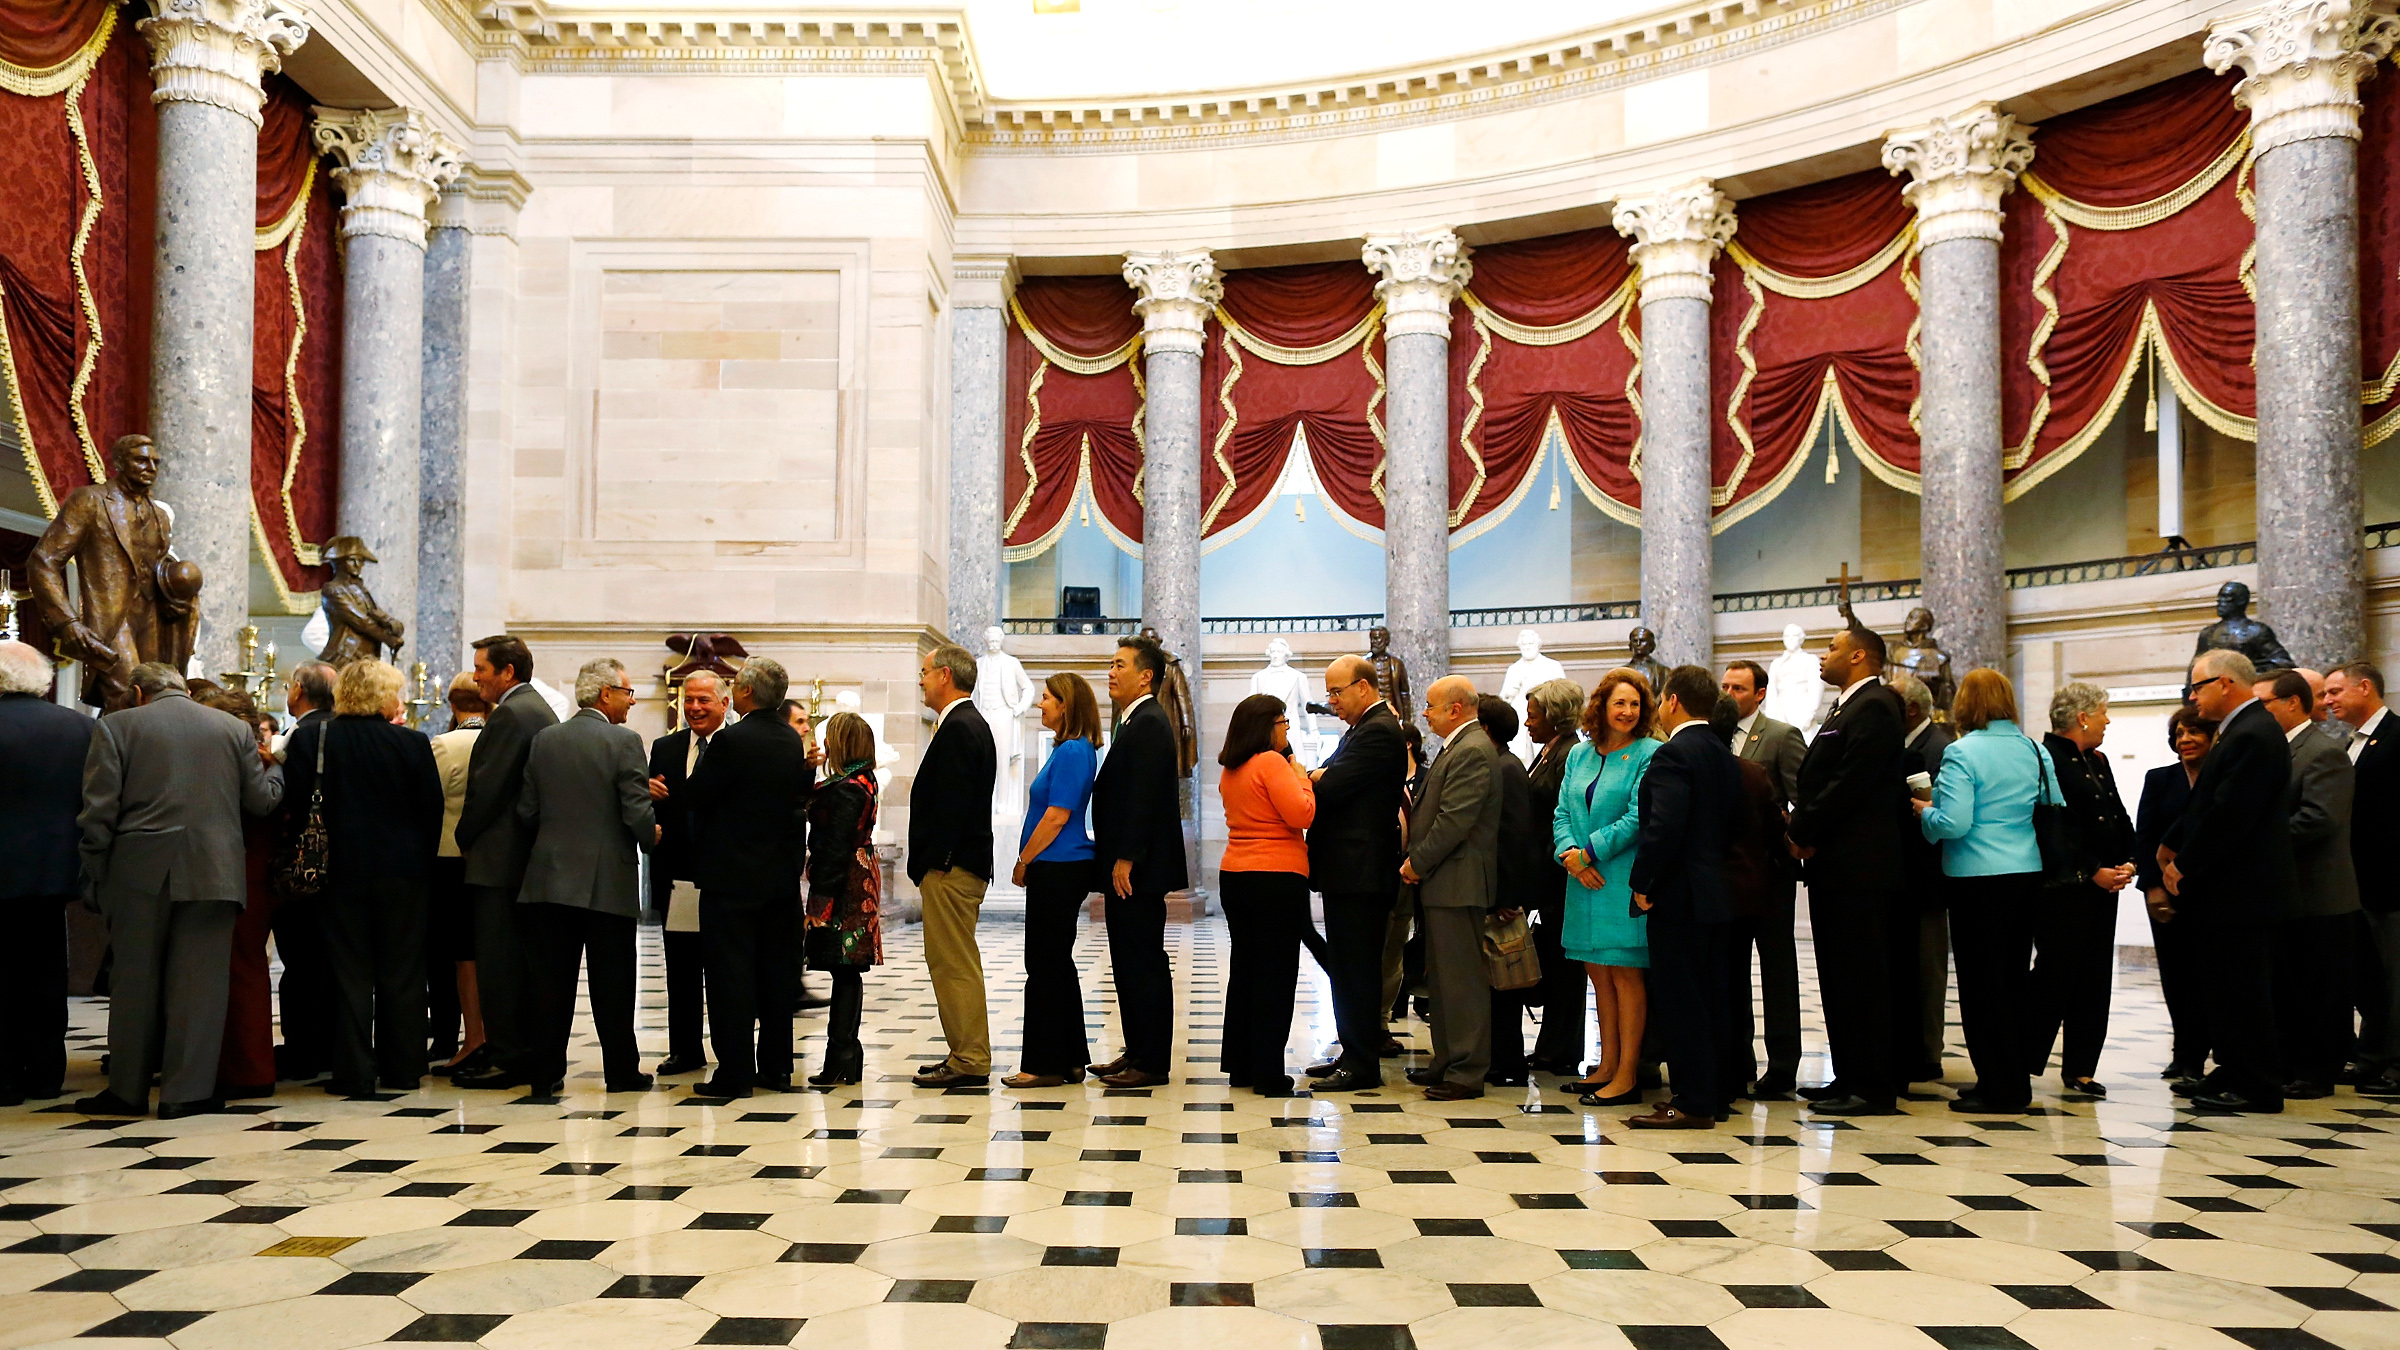 U.S. House Democrats line up single-file to march onto the House Floor for a Saturday session to address the current U.S. government shutdown at the U.S. Capitol in Washington, October 12, 2013. President Barack Obama pressured Republican lawmakers on Saturday to agree to raise the U.S. debt ceiling for longer than they would prefer, as their fiscal impasse dragged into the weekend with five days left to find a deal.